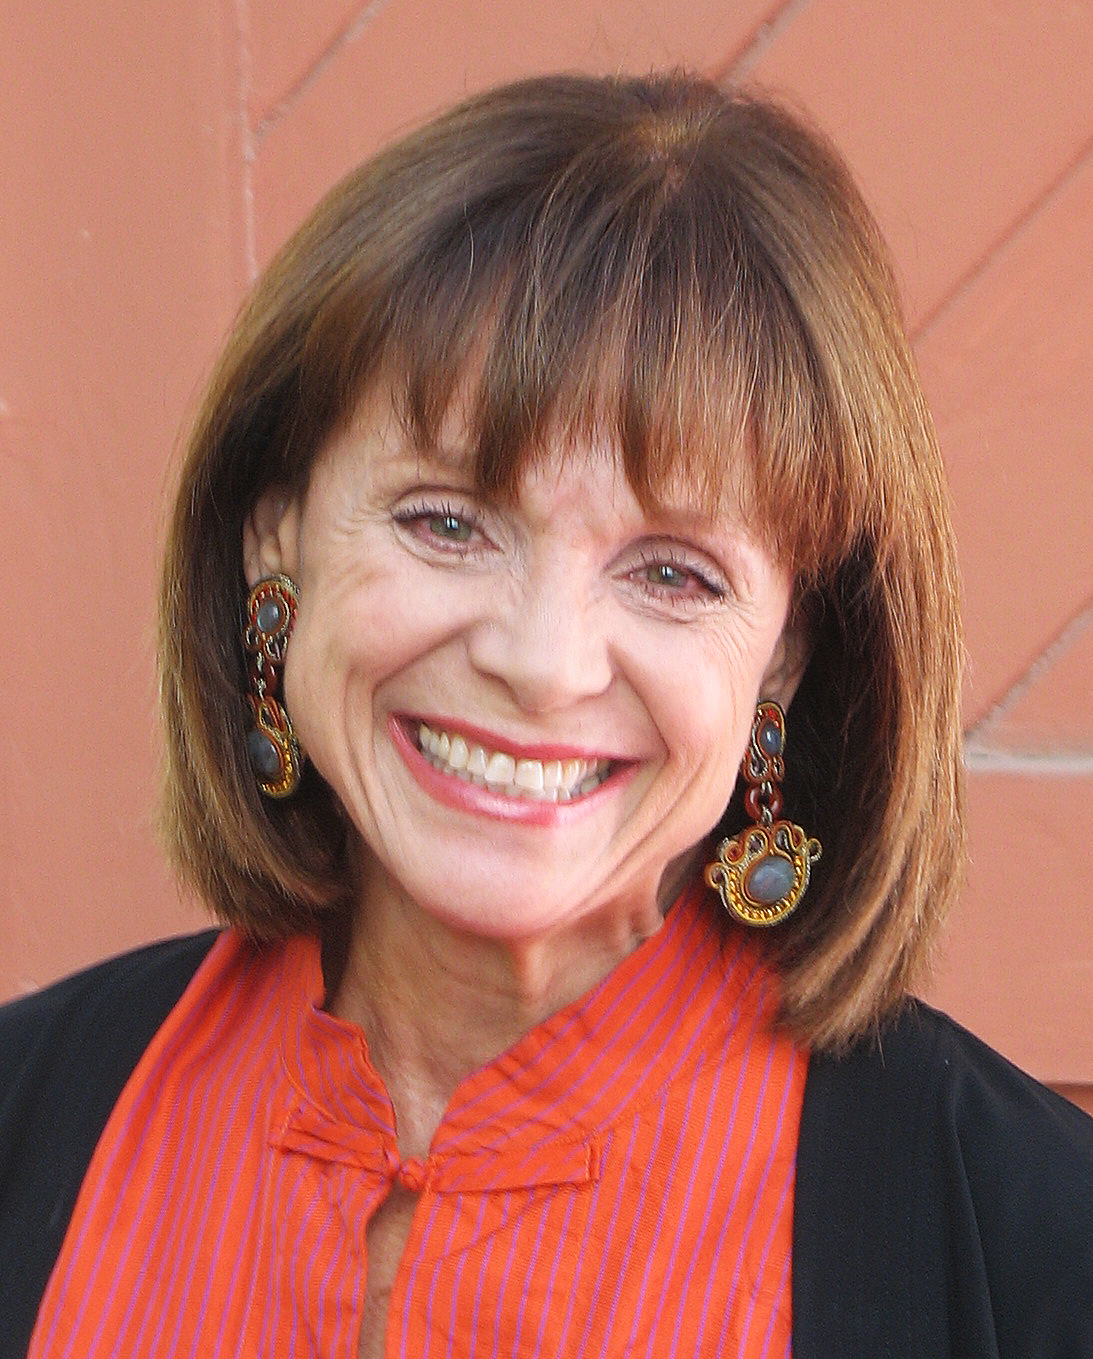 Valerie Harper born August 22, 1939 (age 79) Valerie Harper born August 22, 1939 (age 79) new images